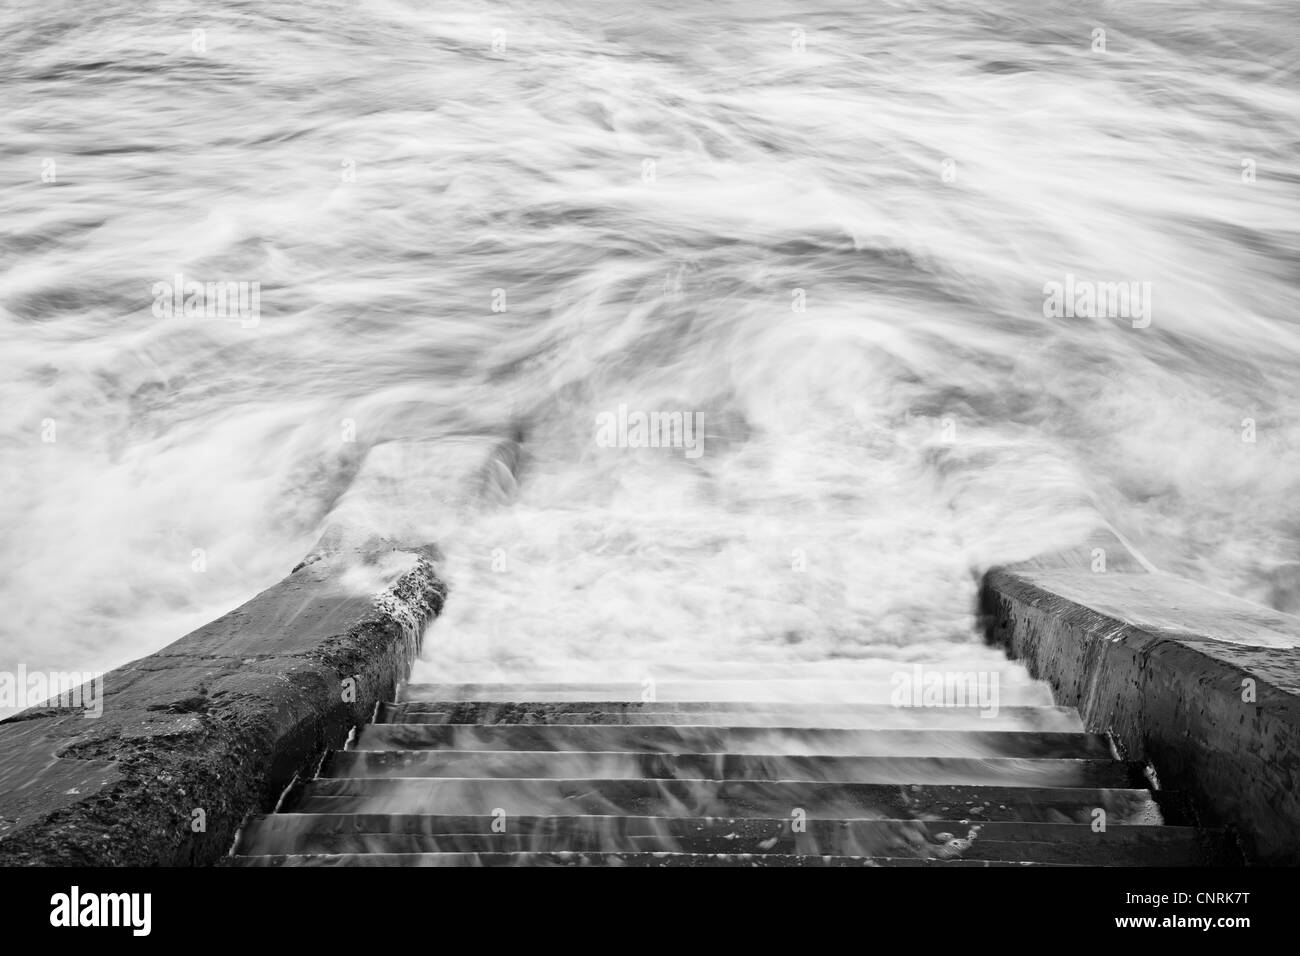 Swirling waves at Scarborough's North Bay, North Yorkshire. - Stock Image